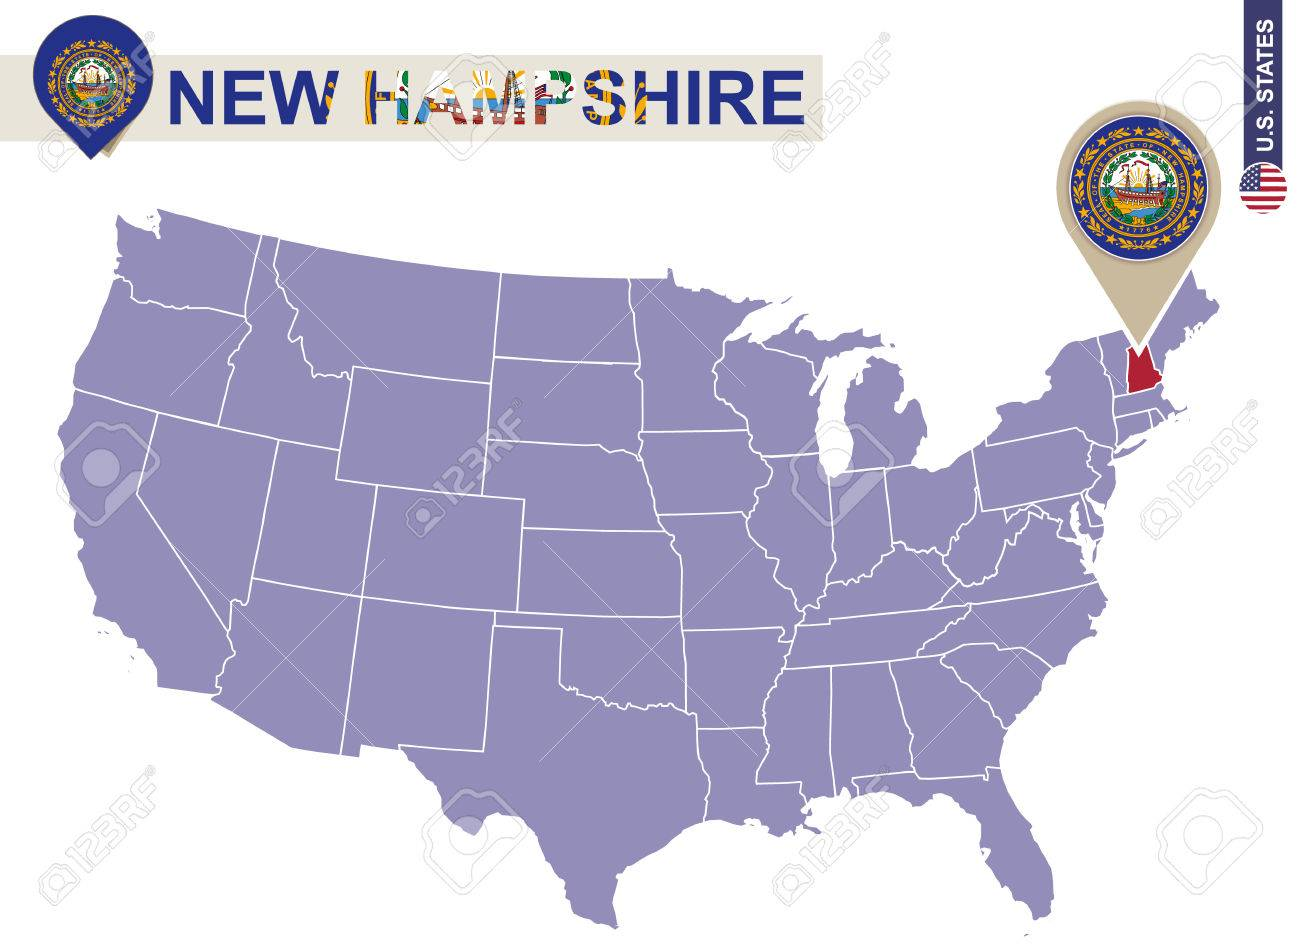 New Hampshire On Map Of Usa.New Hampshire State On Usa Map New Hampshire Flag And Map Us